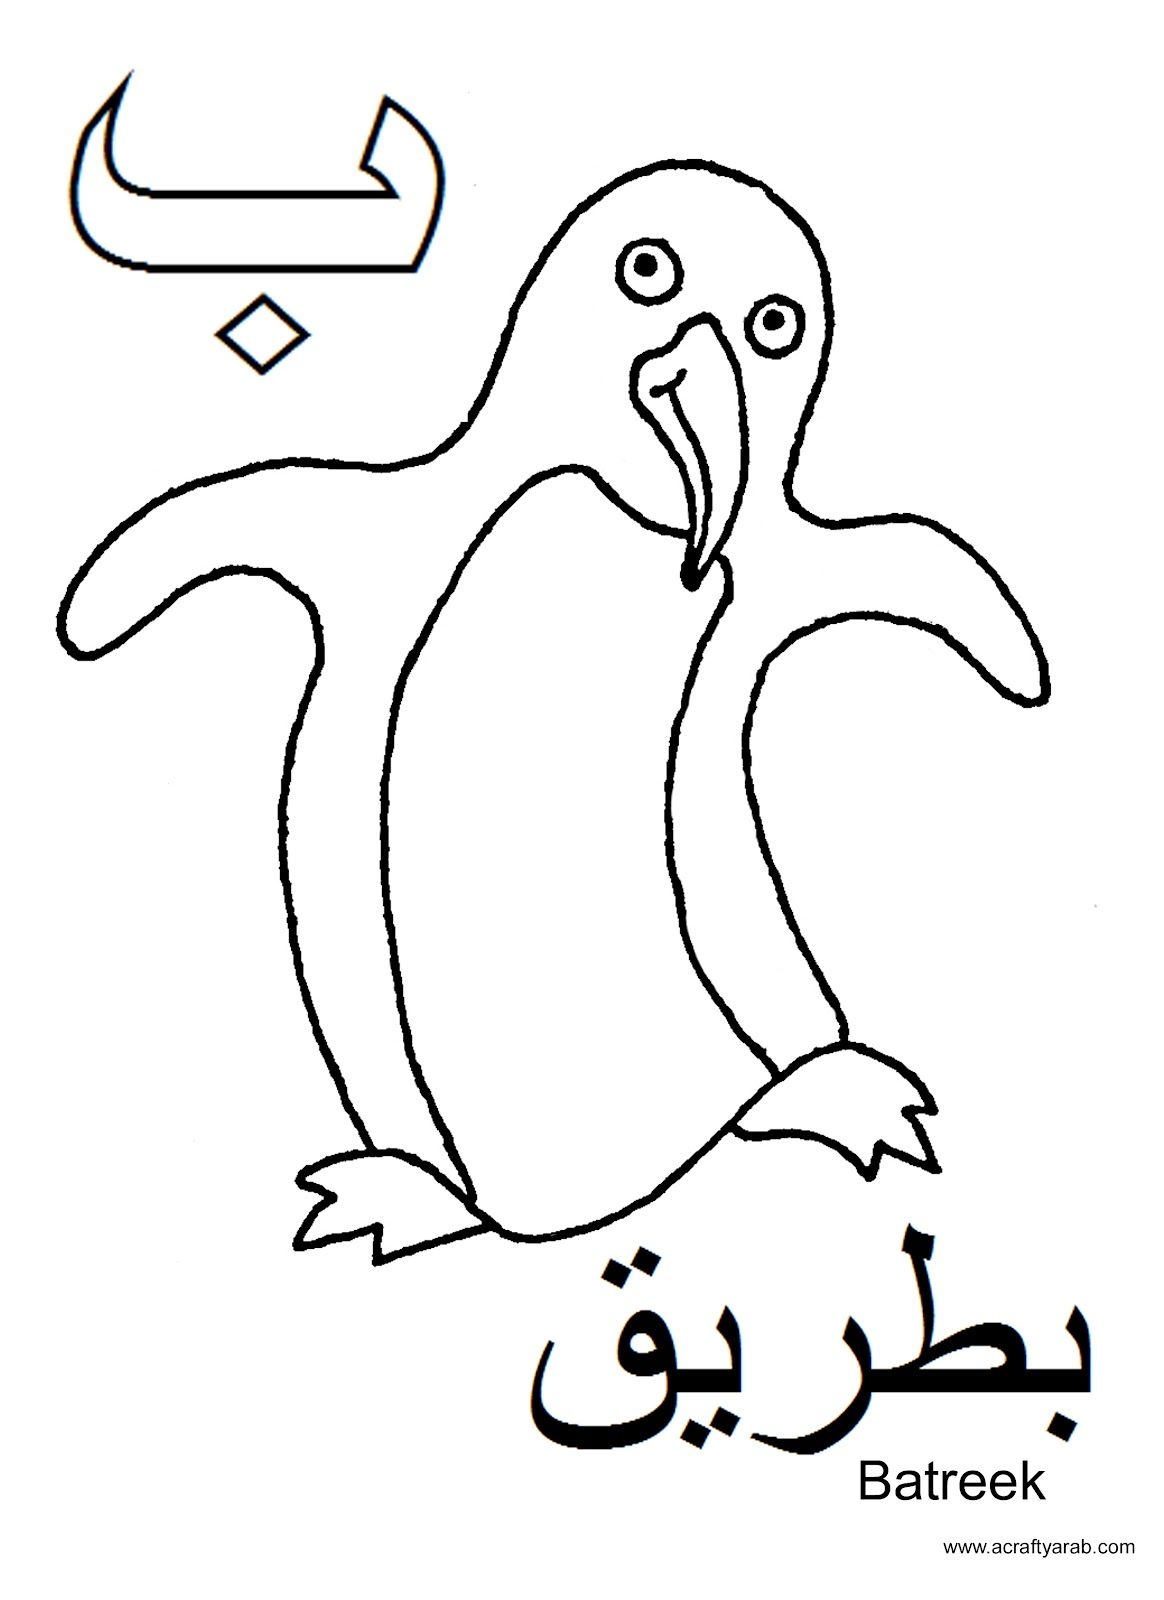 Arabic Alphabet Coloring Pages Baa Is For Batreek Arabic Alphabet Alphabet Coloring Pages Alphabet Coloring